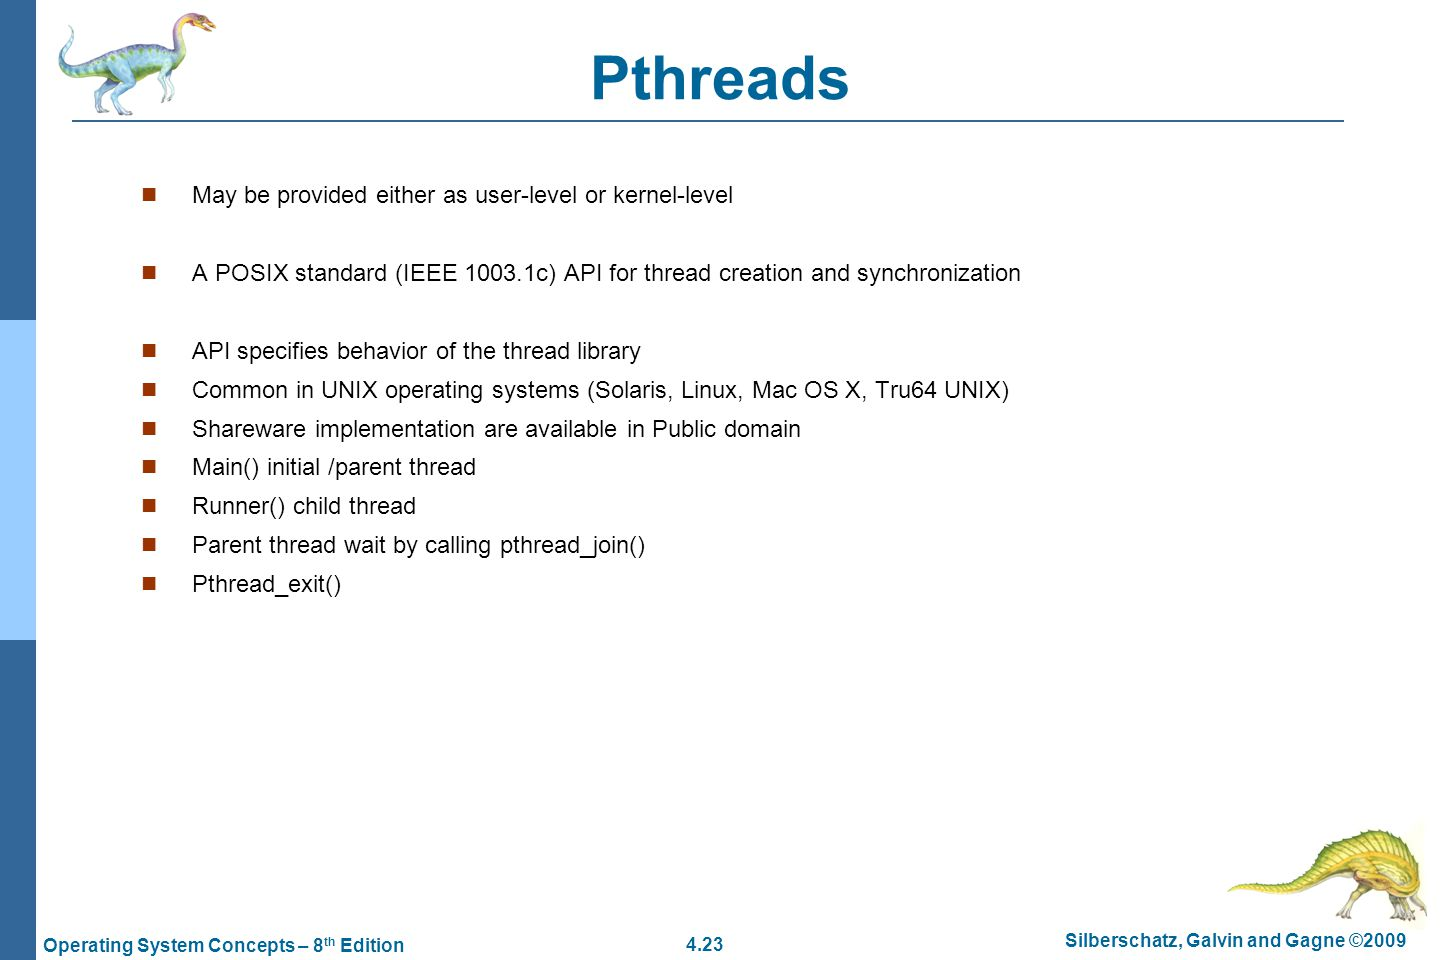 4.23 Silberschatz, Galvin and Gagne ©2009 Operating System Concepts – 8 th Edition Pthreads May be provided either as user-level or kernel-level A POSIX standard (IEEE 1003.1c) API for thread creation and synchronization API specifies behavior of the thread library Common in UNIX operating systems (Solaris, Linux, Mac OS X, Tru64 UNIX) Shareware implementation are available in Public domain Main() initial /parent thread Runner() child thread Parent thread wait by calling pthread_join() Pthread_exit()